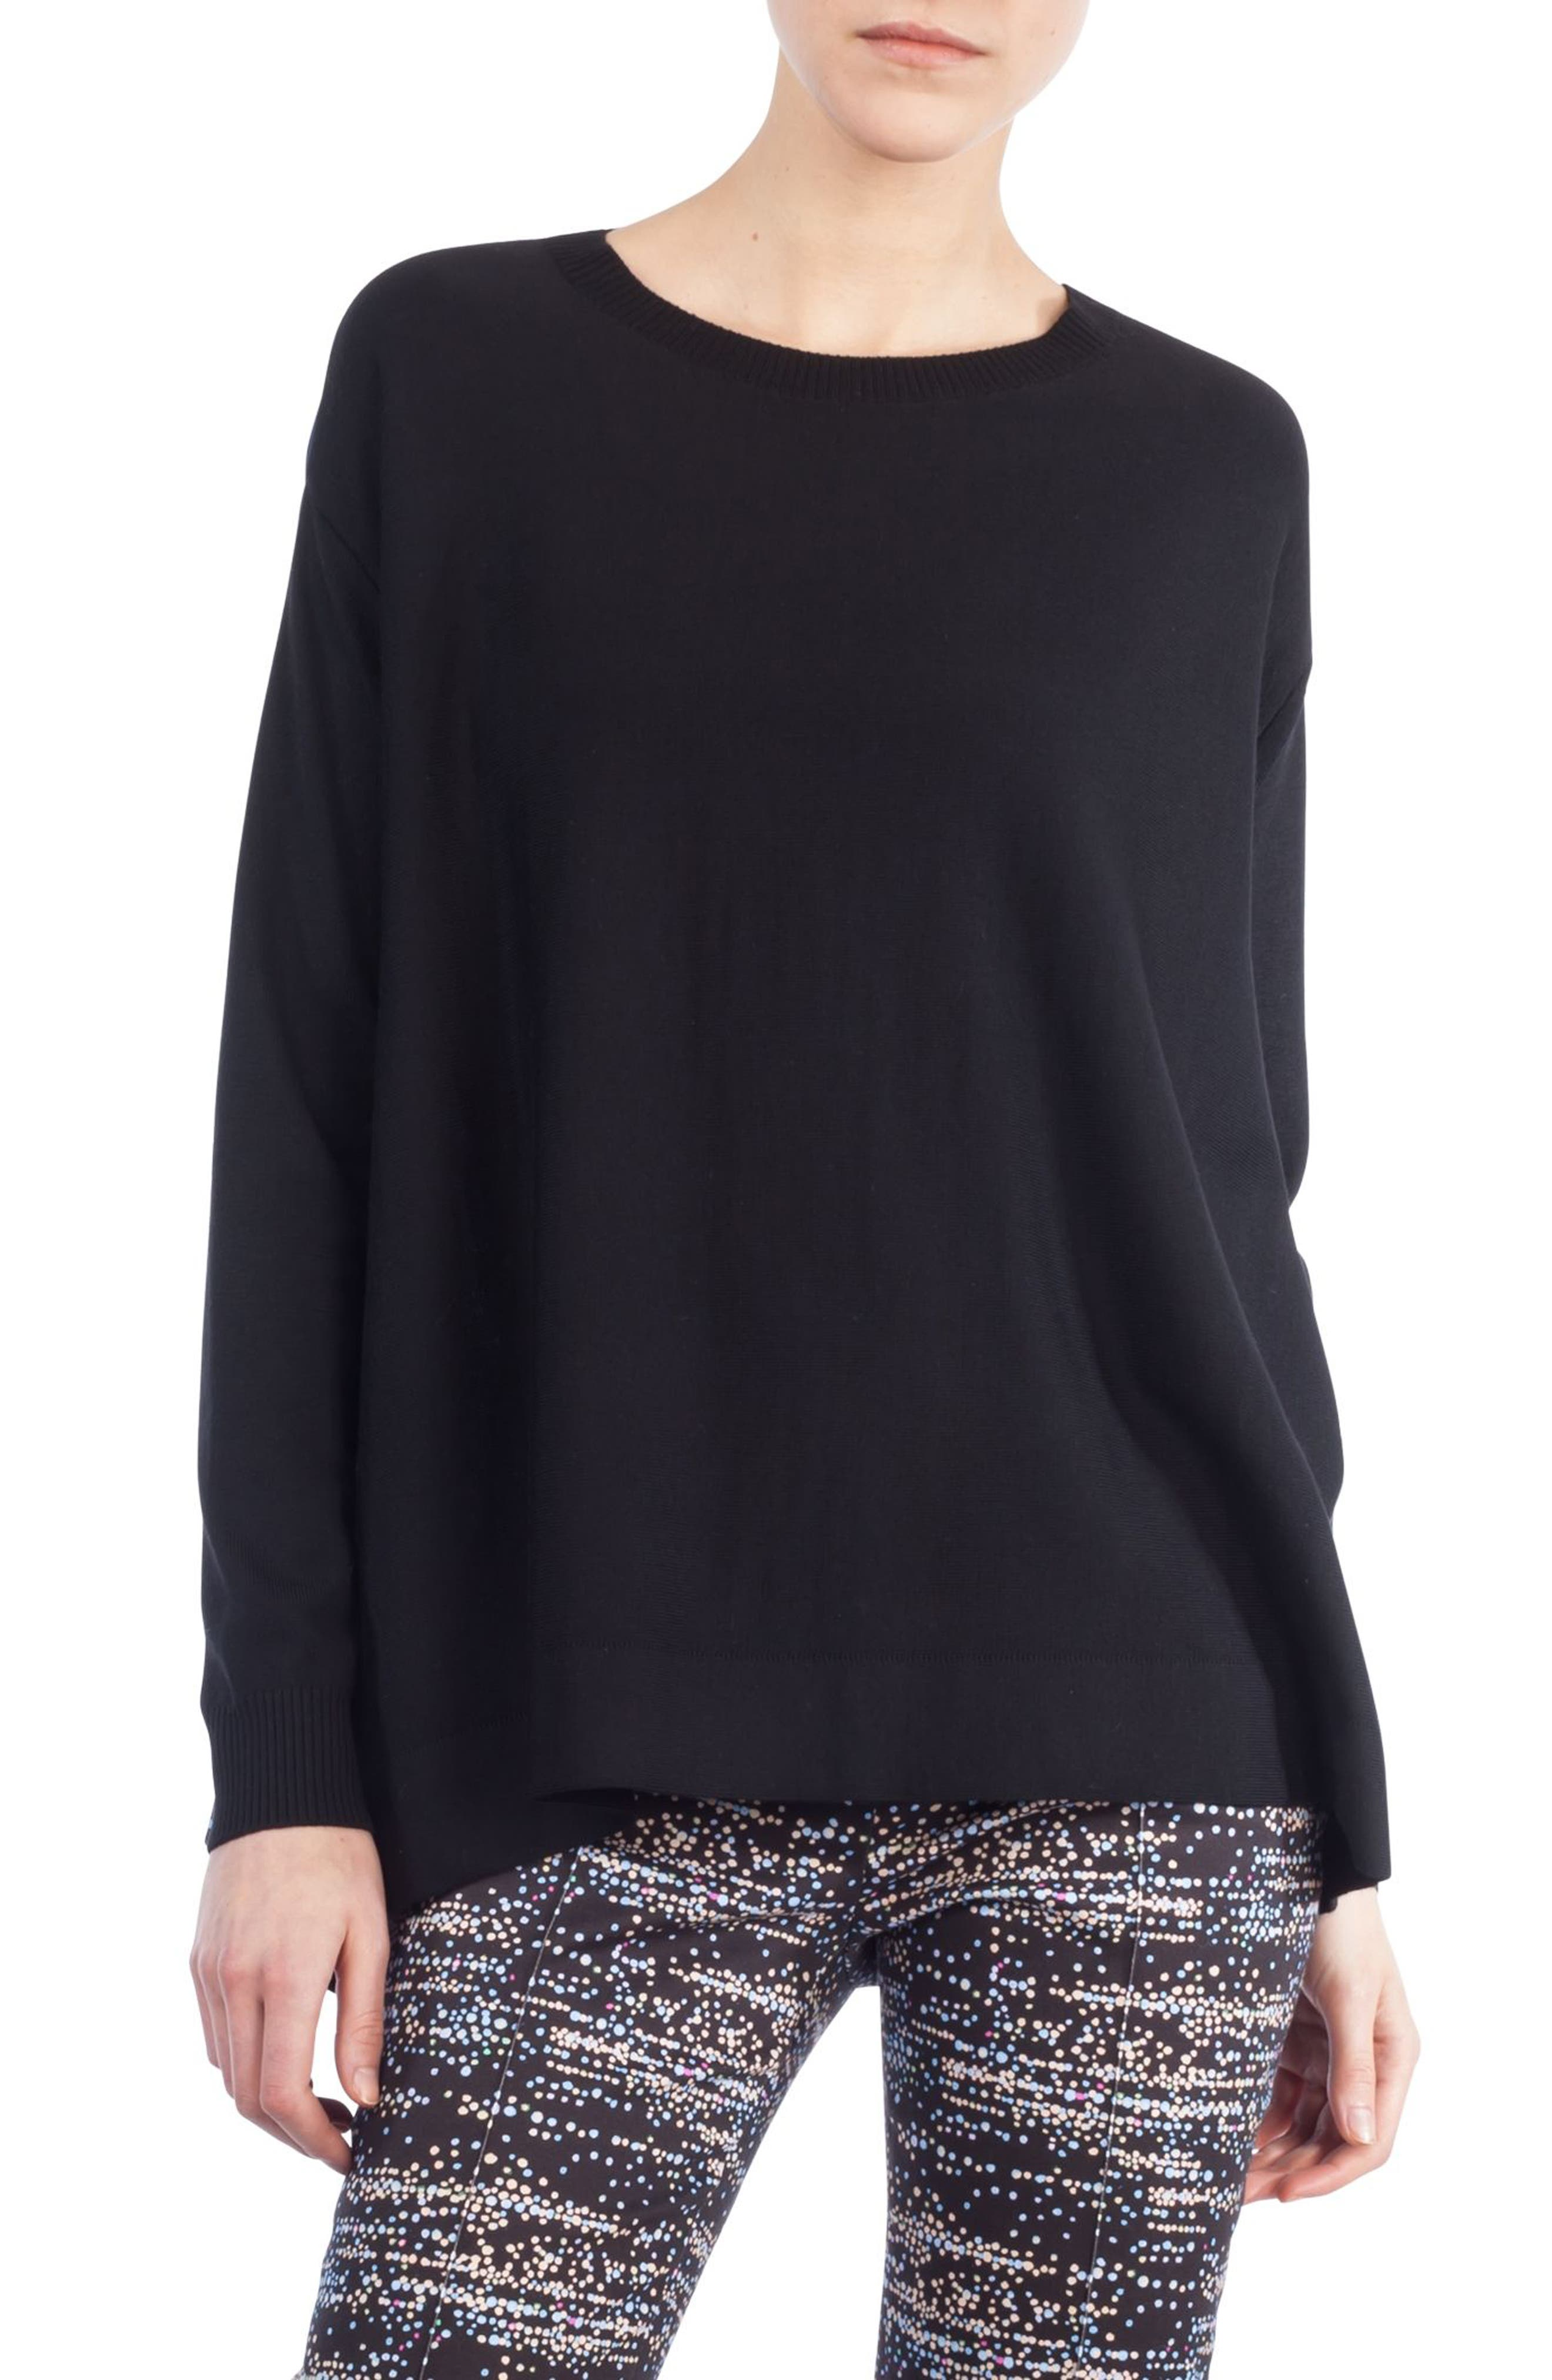 Twilight Print Wool Pullover,                             Main thumbnail 1, color,                             Black/ Multicolor